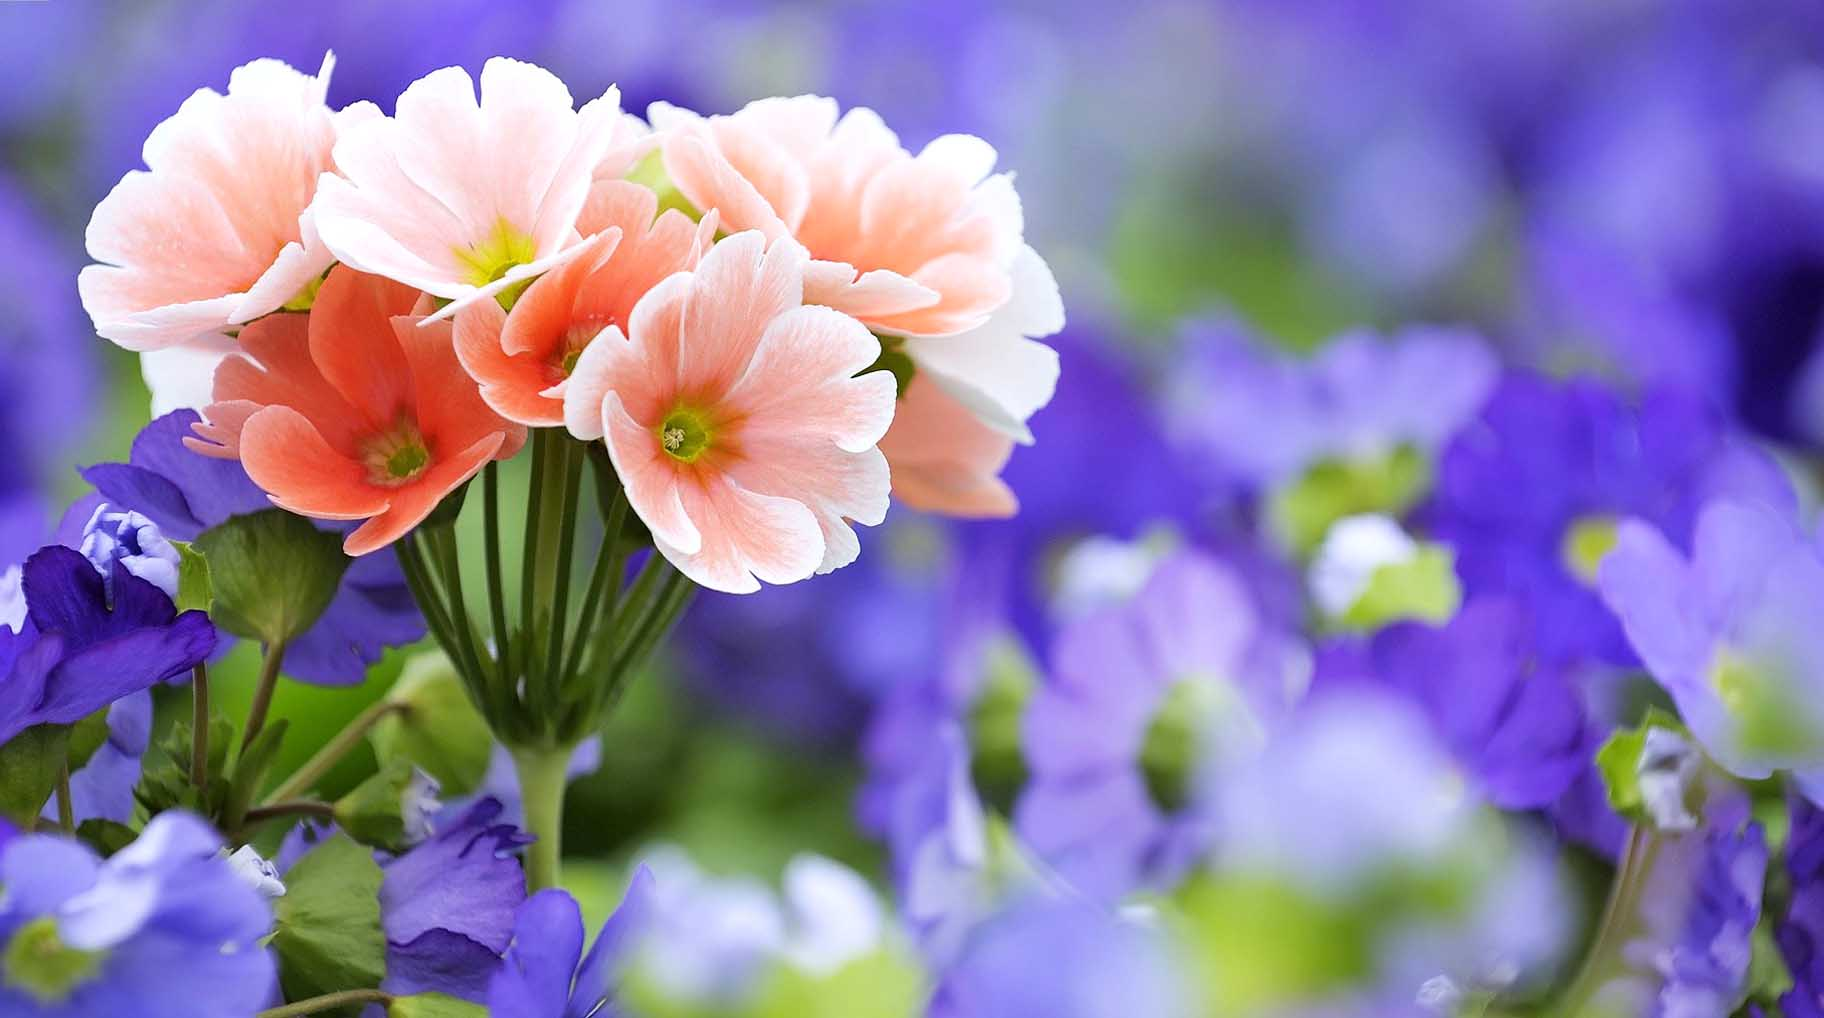 wallpapers of flowers to download